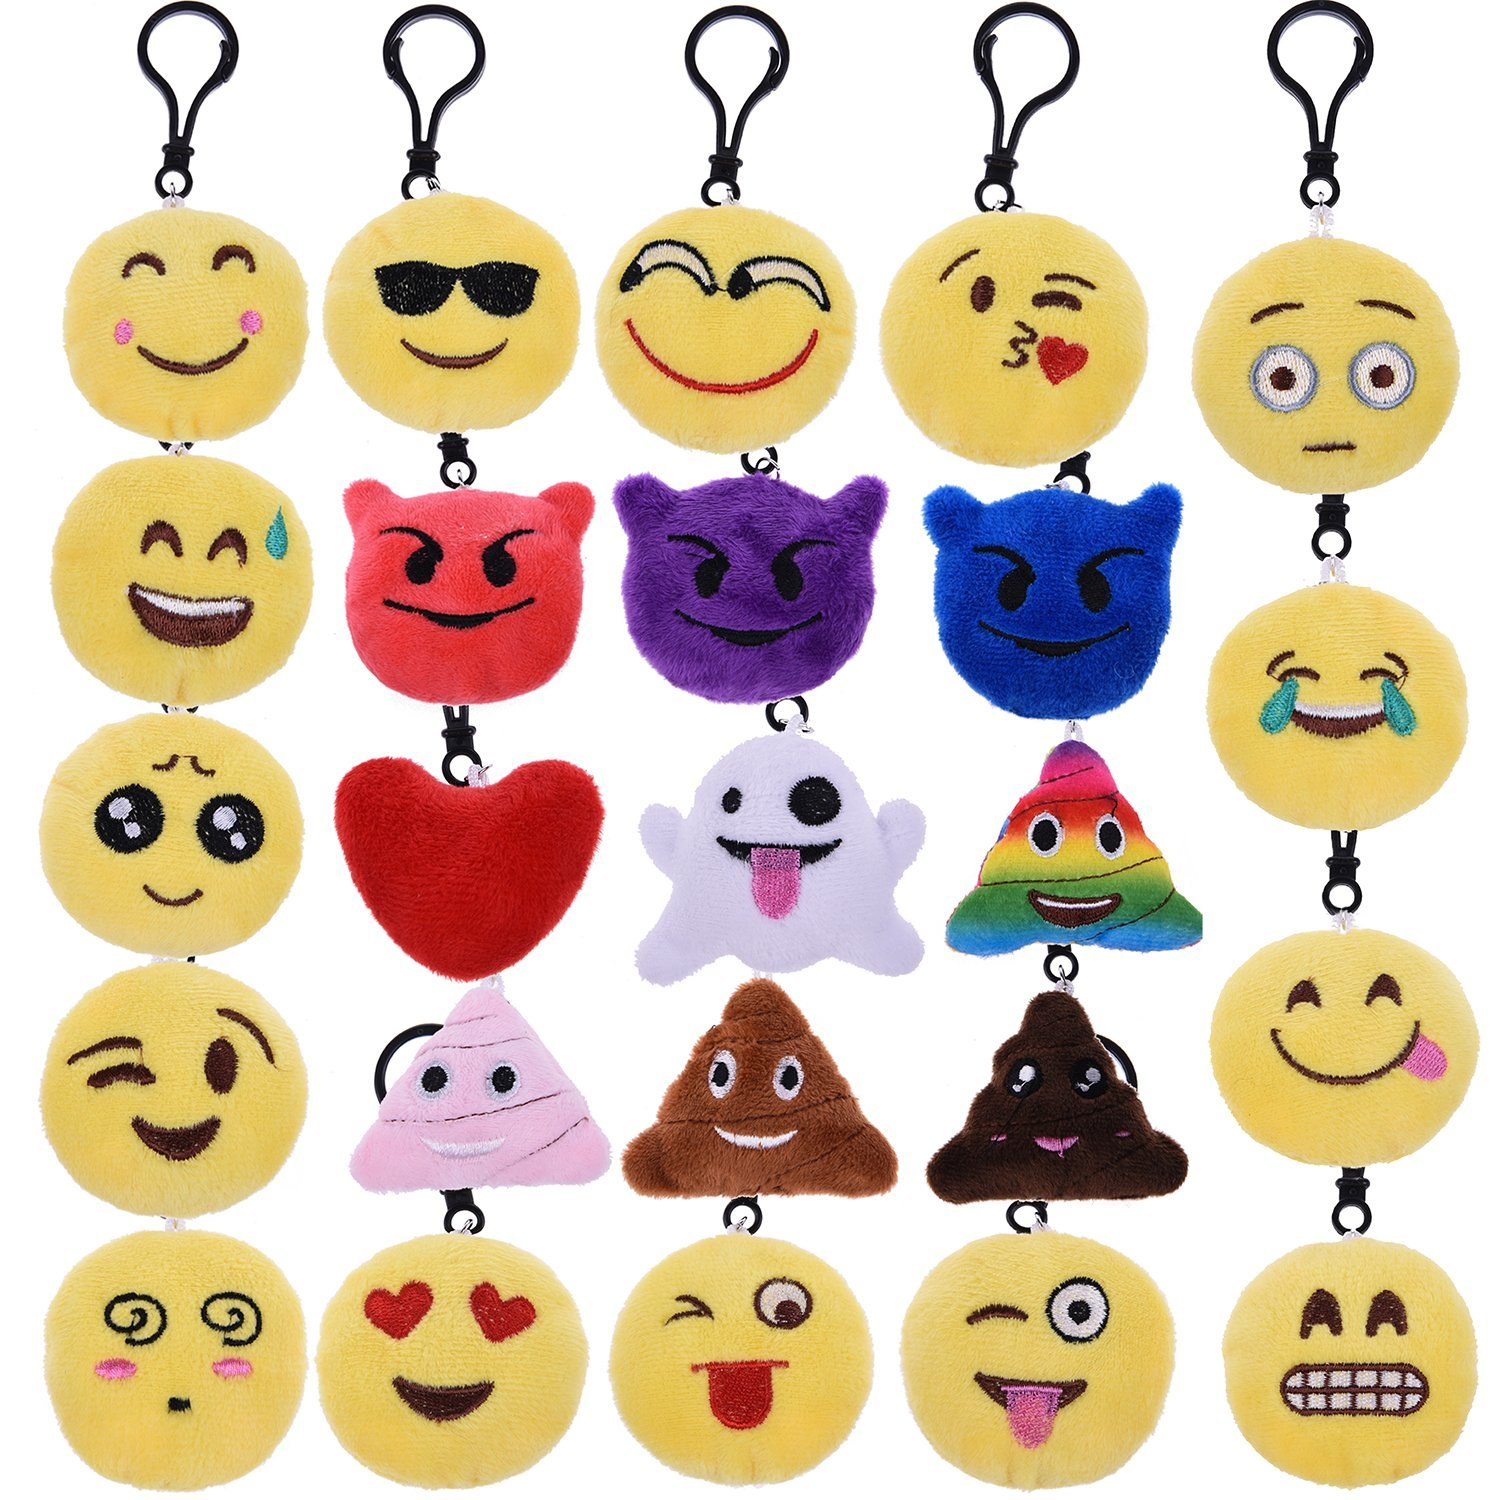 Emoji Toys Plush Pillows Keychain Party Supplies Pendants Set,Including Poop, Cry, Smile, Laugh Faces for Party Favors,Decoration, Birthday Gift 24 PCs F-140